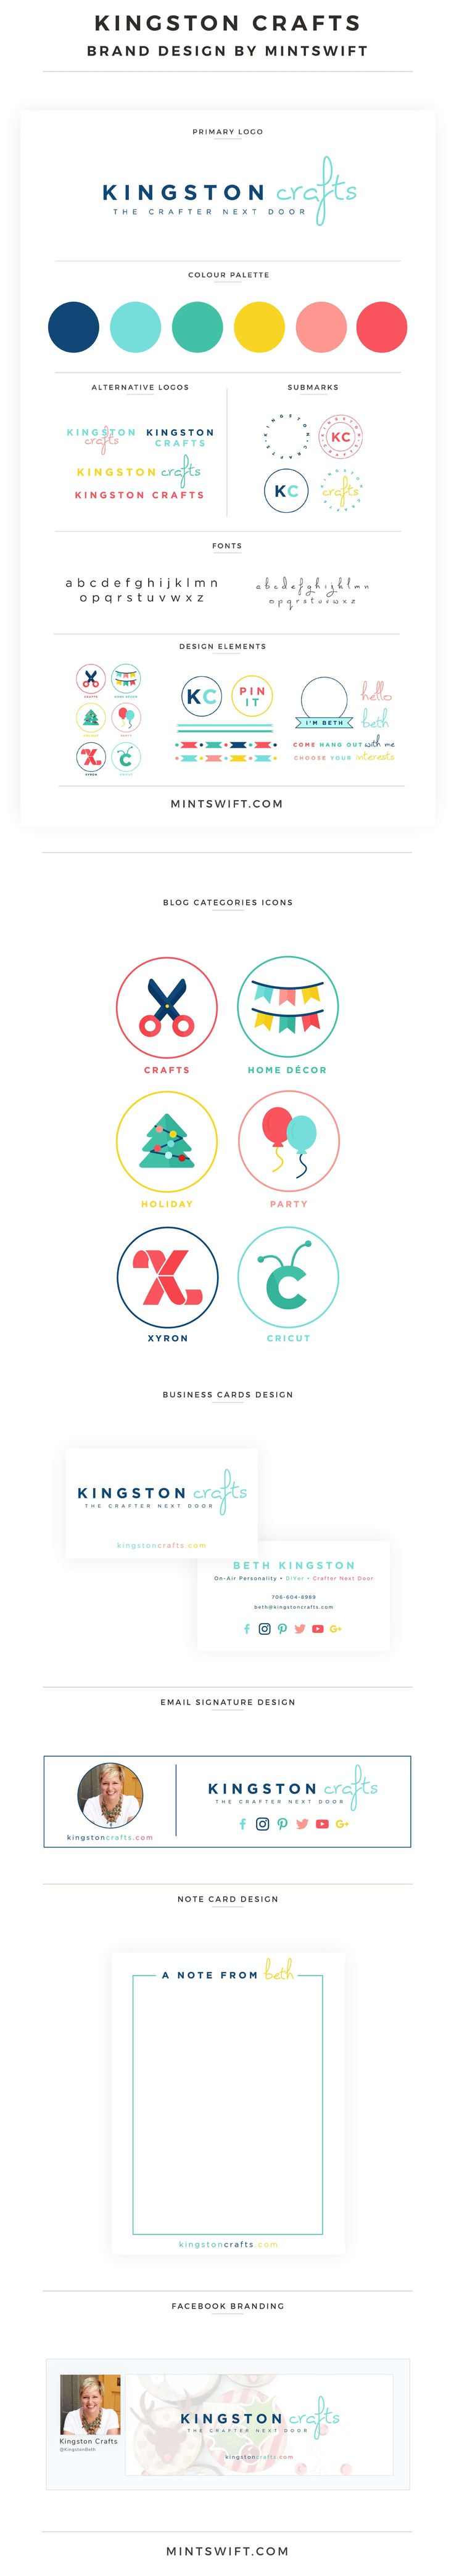 Brand Design for Kingston Crafts